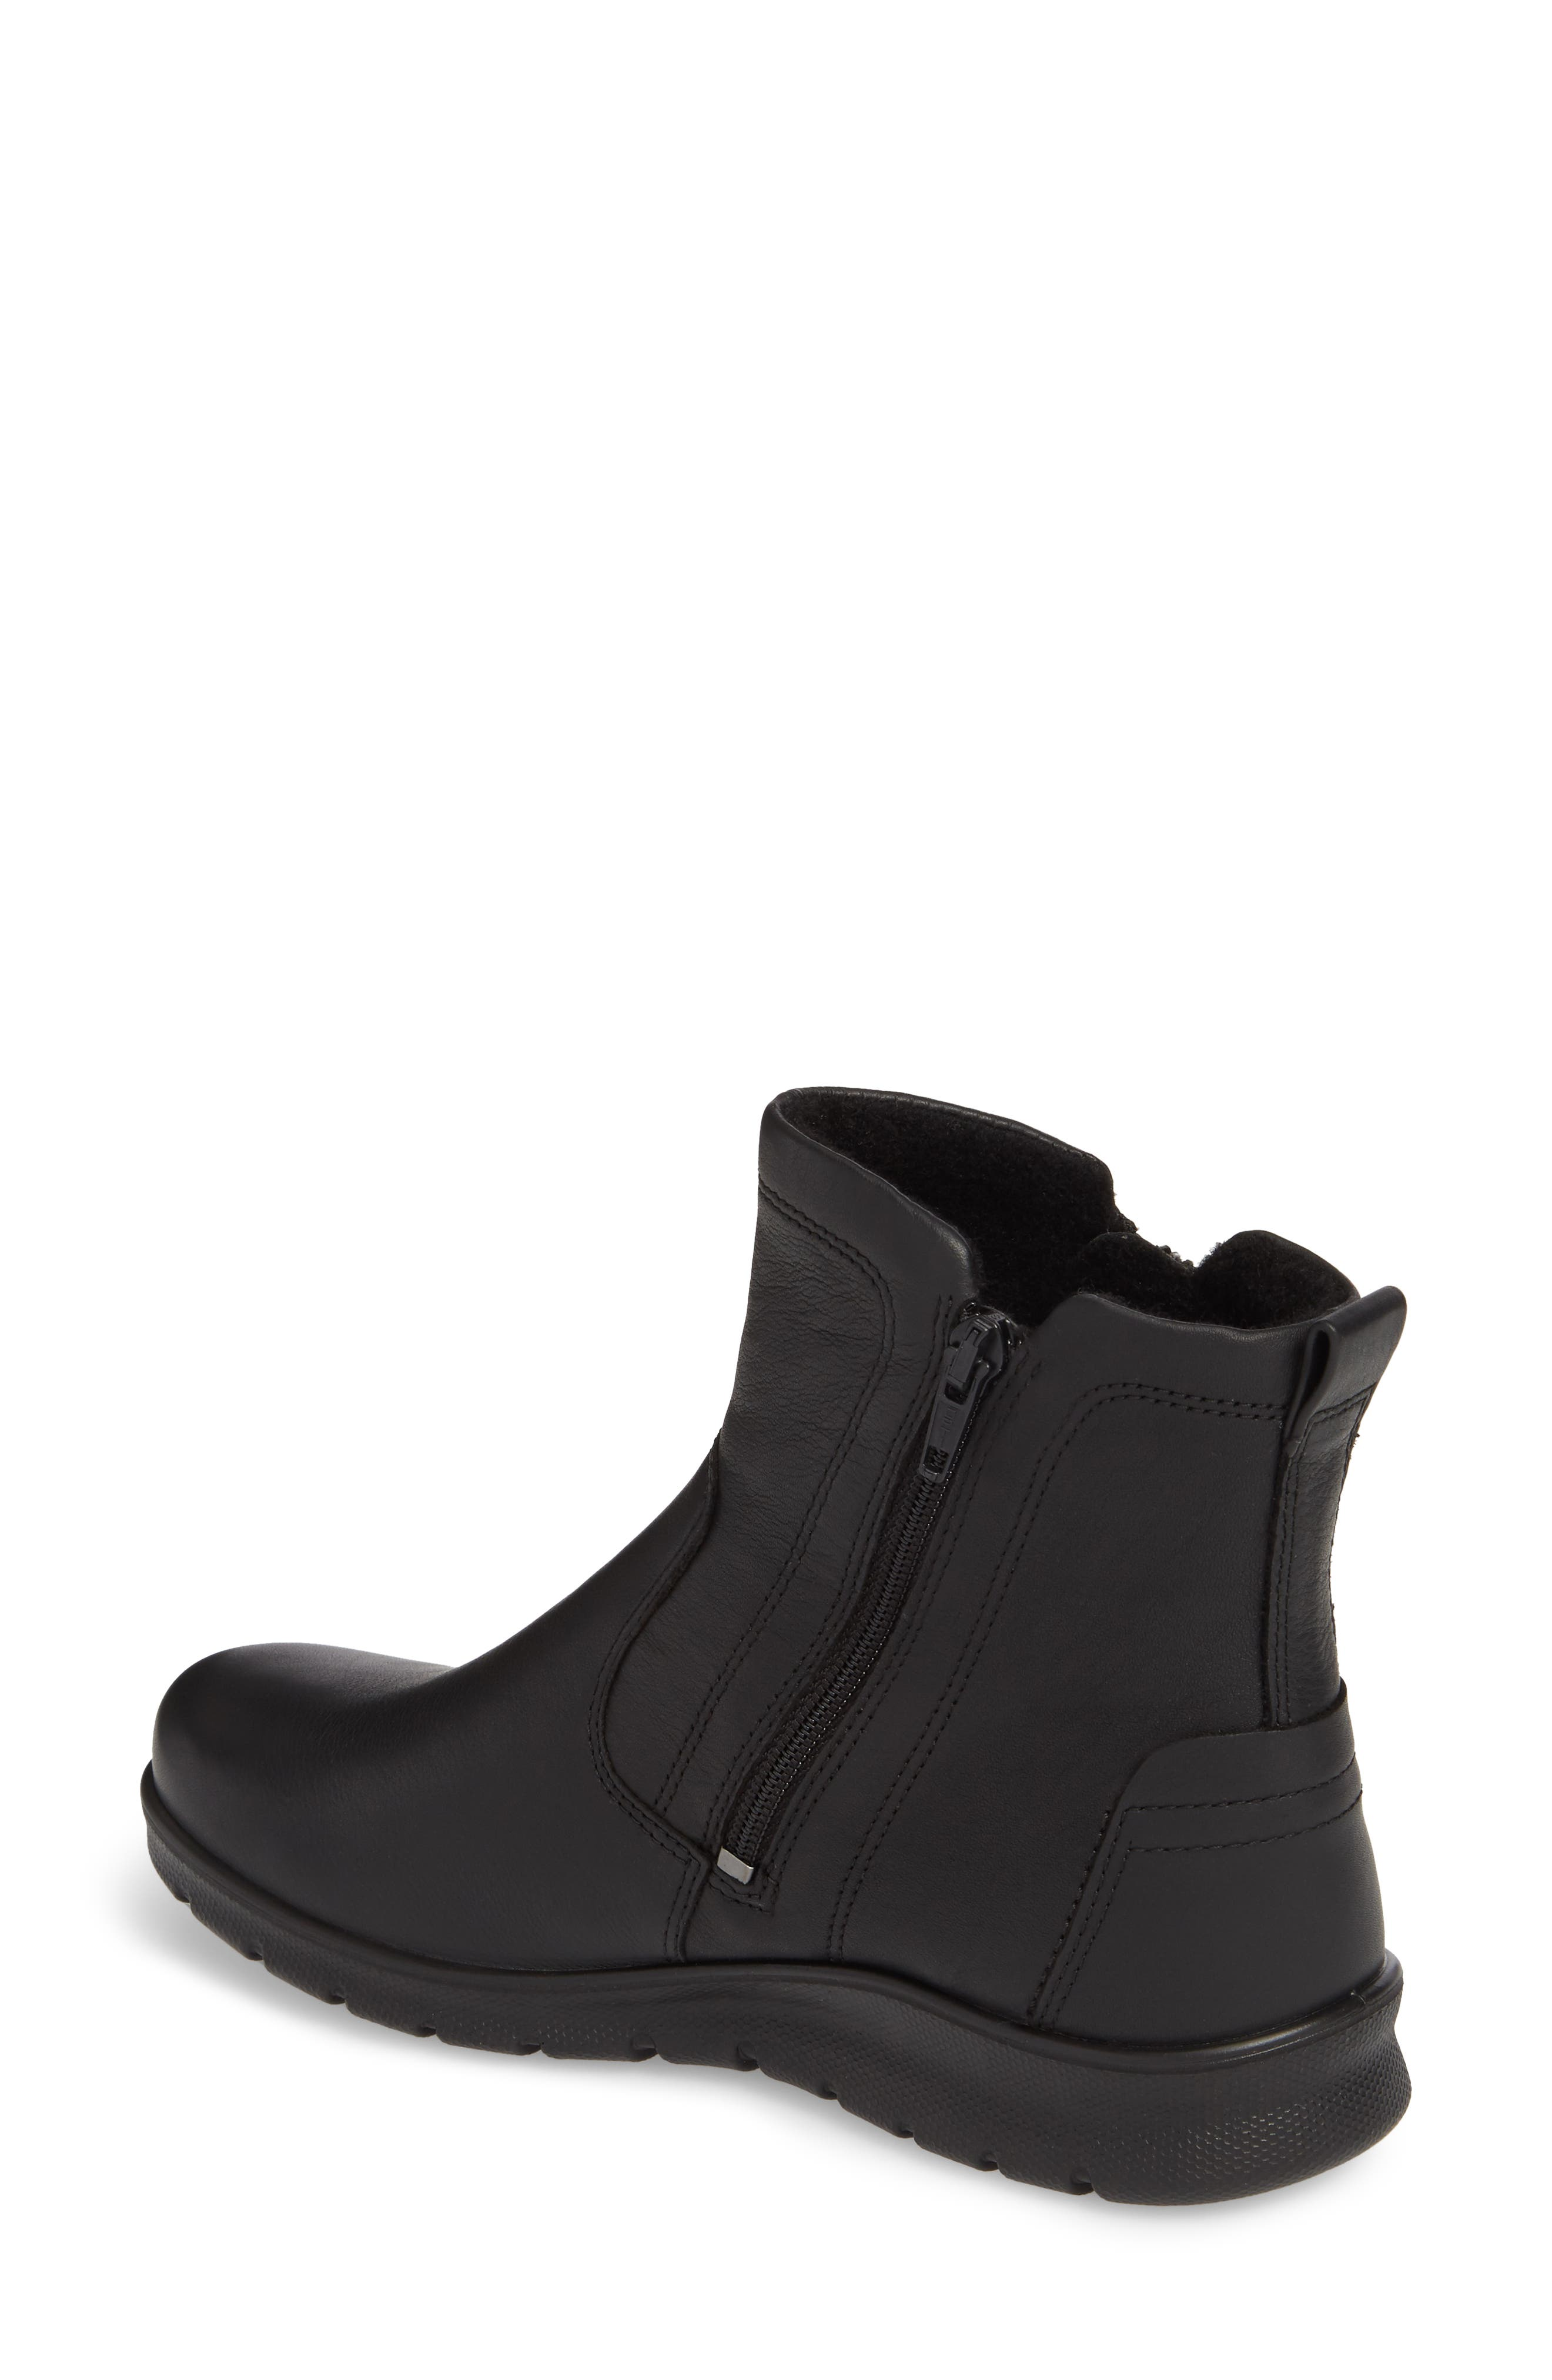 Babett Gore-Tex<sup>®</sup> Bootie,                             Alternate thumbnail 2, color,                             BLACK LEATHER